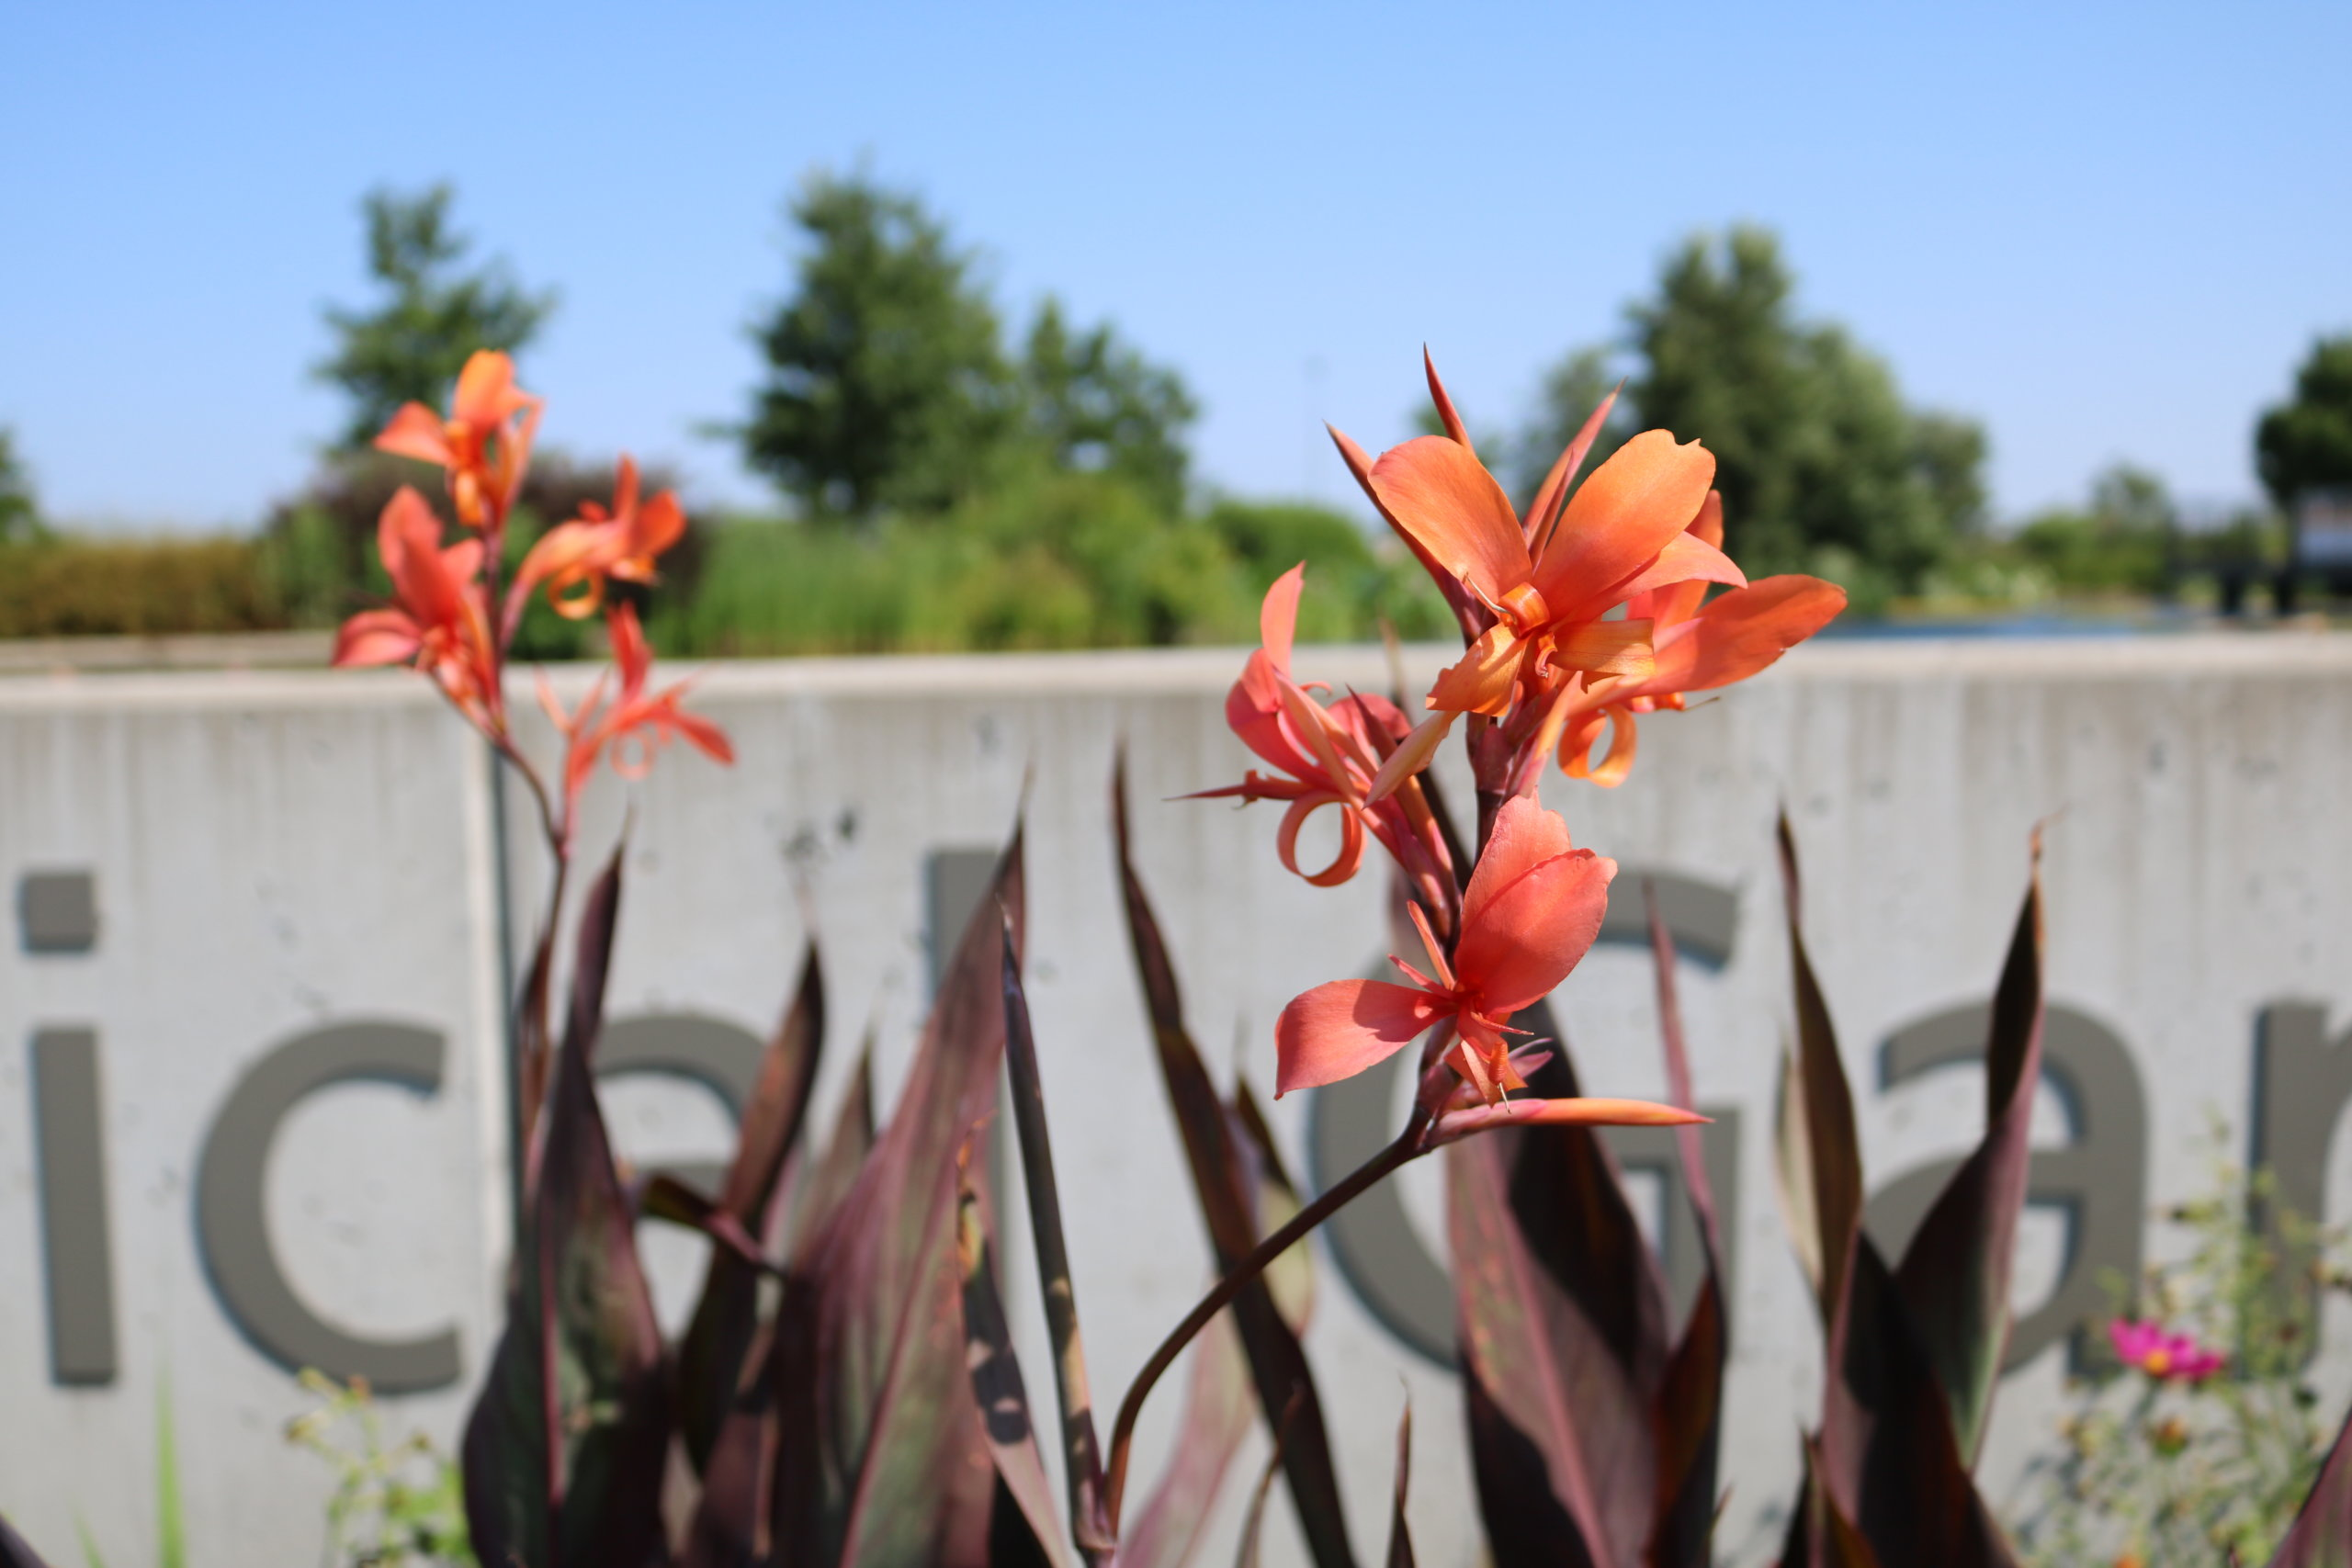 Canna 'Intrigue' stuns in the EMC Insurance Companies Entry Garden. This coral color is a sight to see in person!